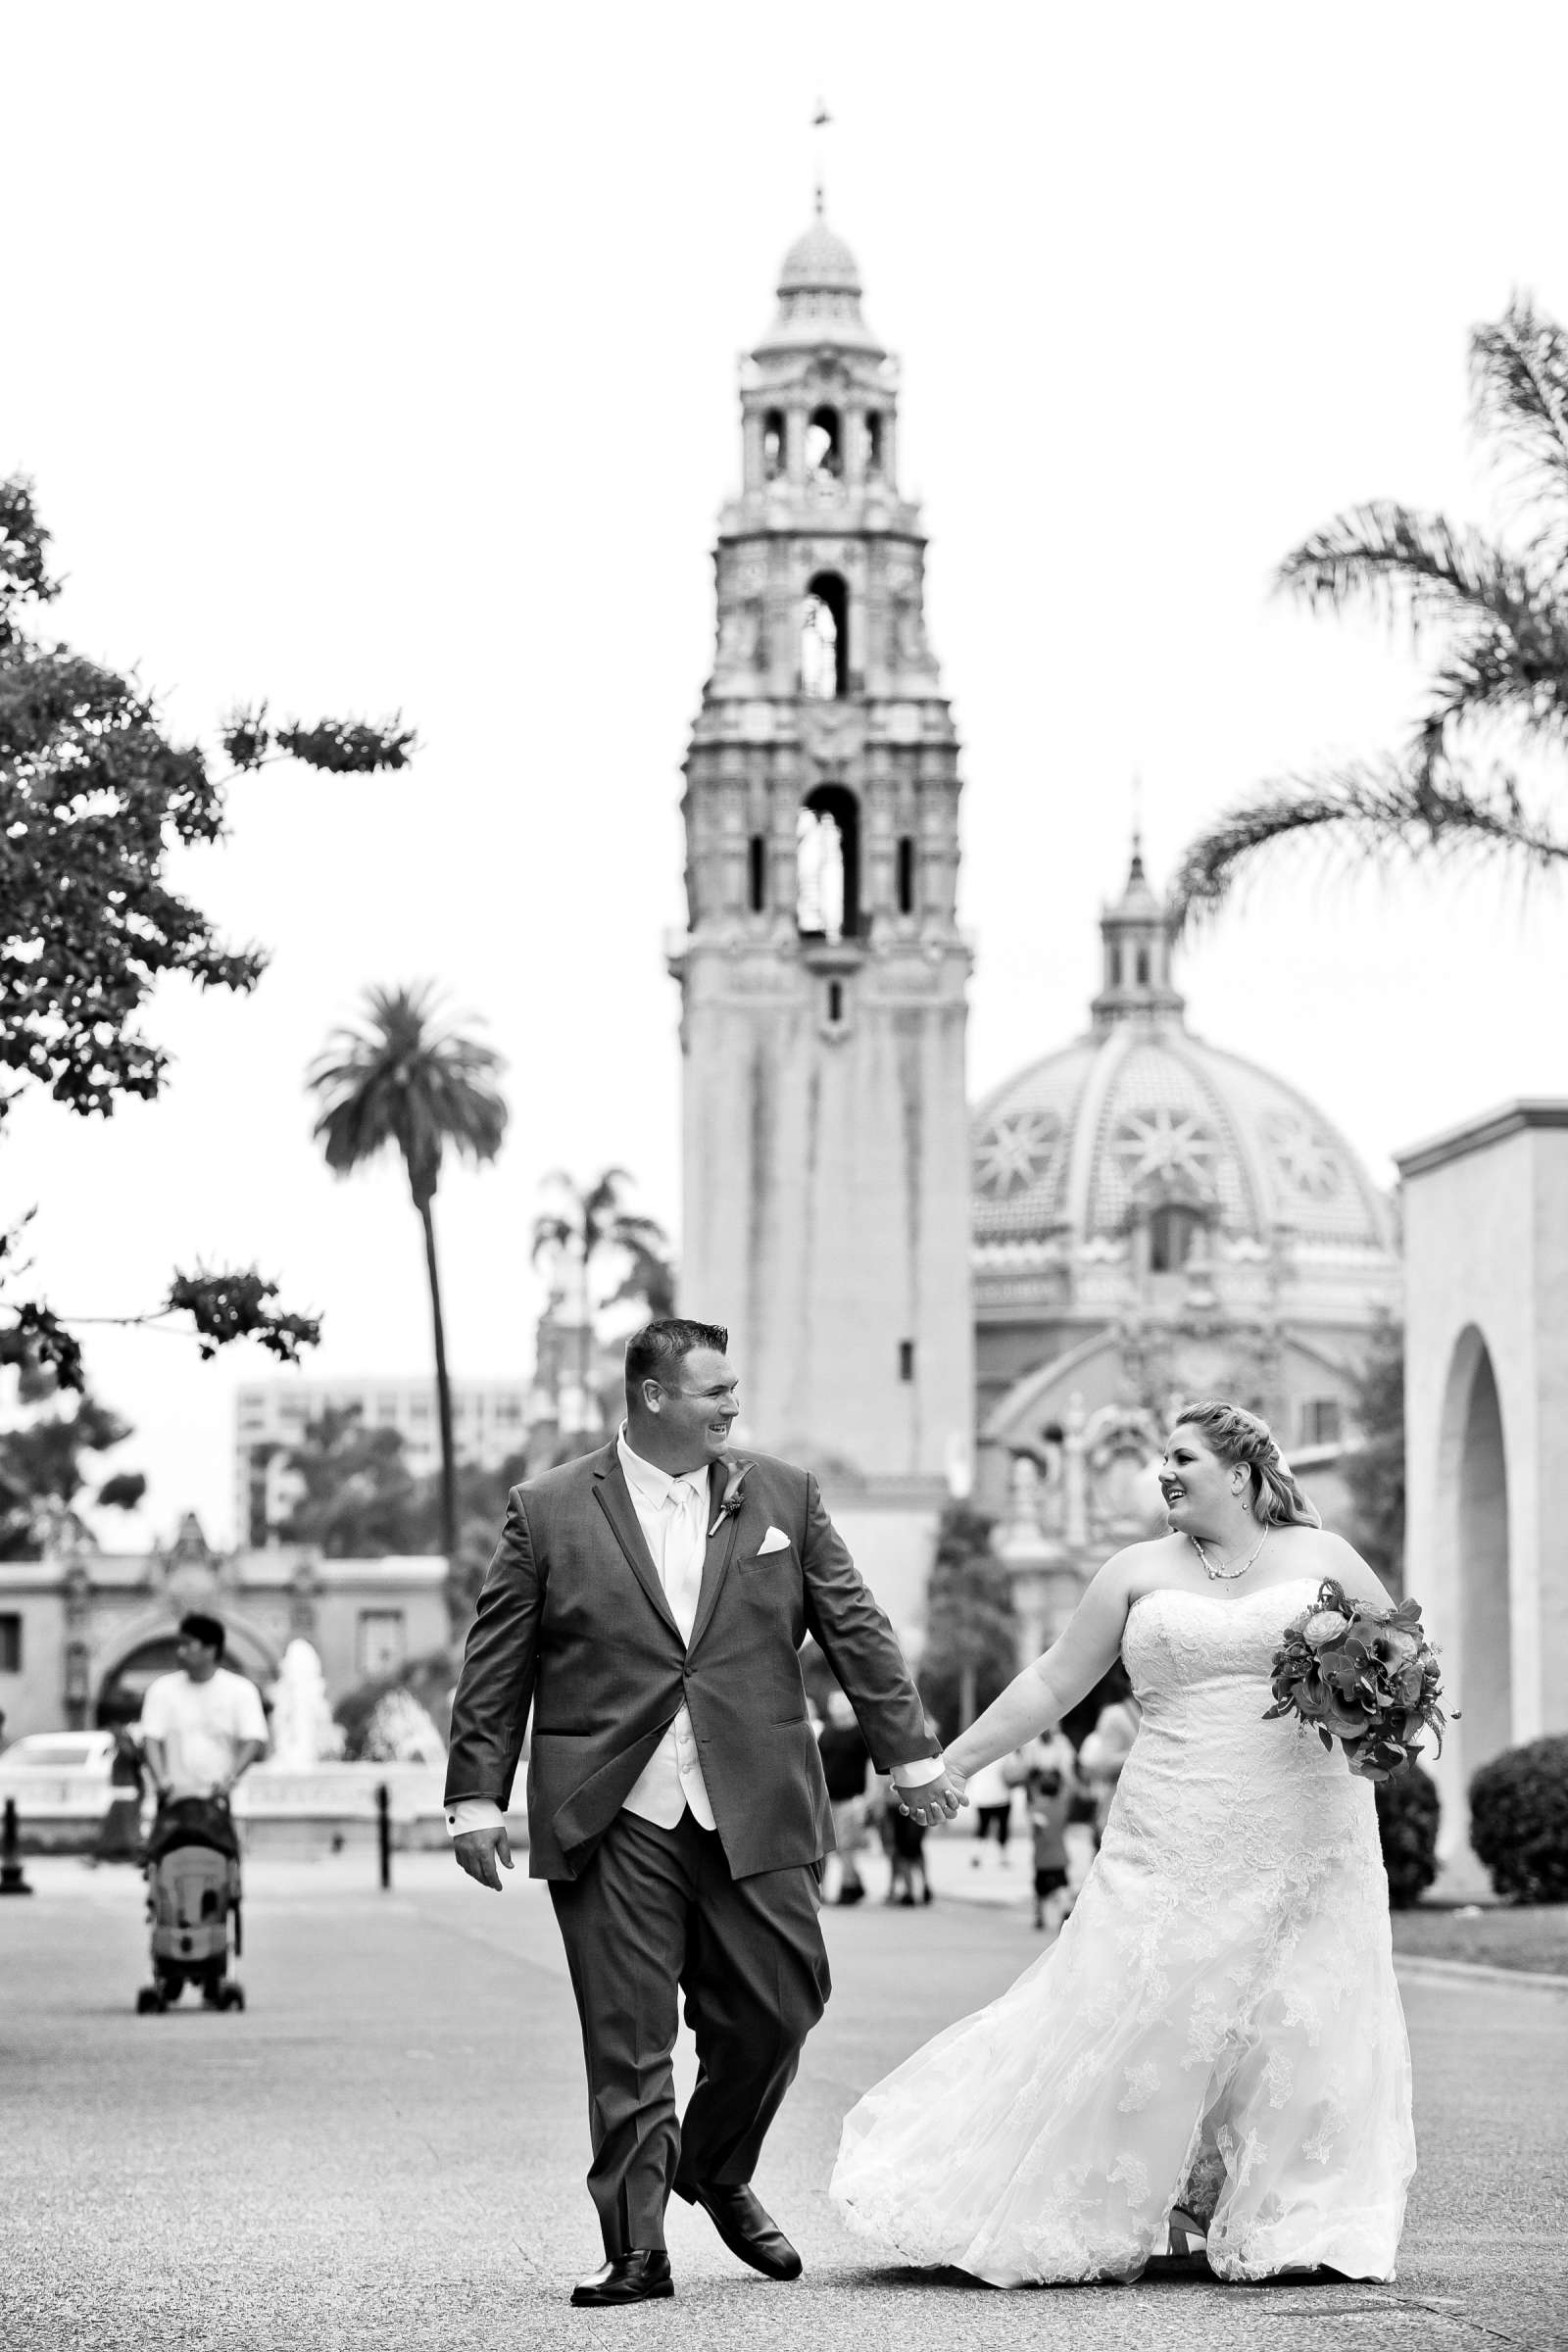 The Prado Wedding coordinated by Monarch Weddings, Eileen and Robbie Wedding Photo #10 by True Photography